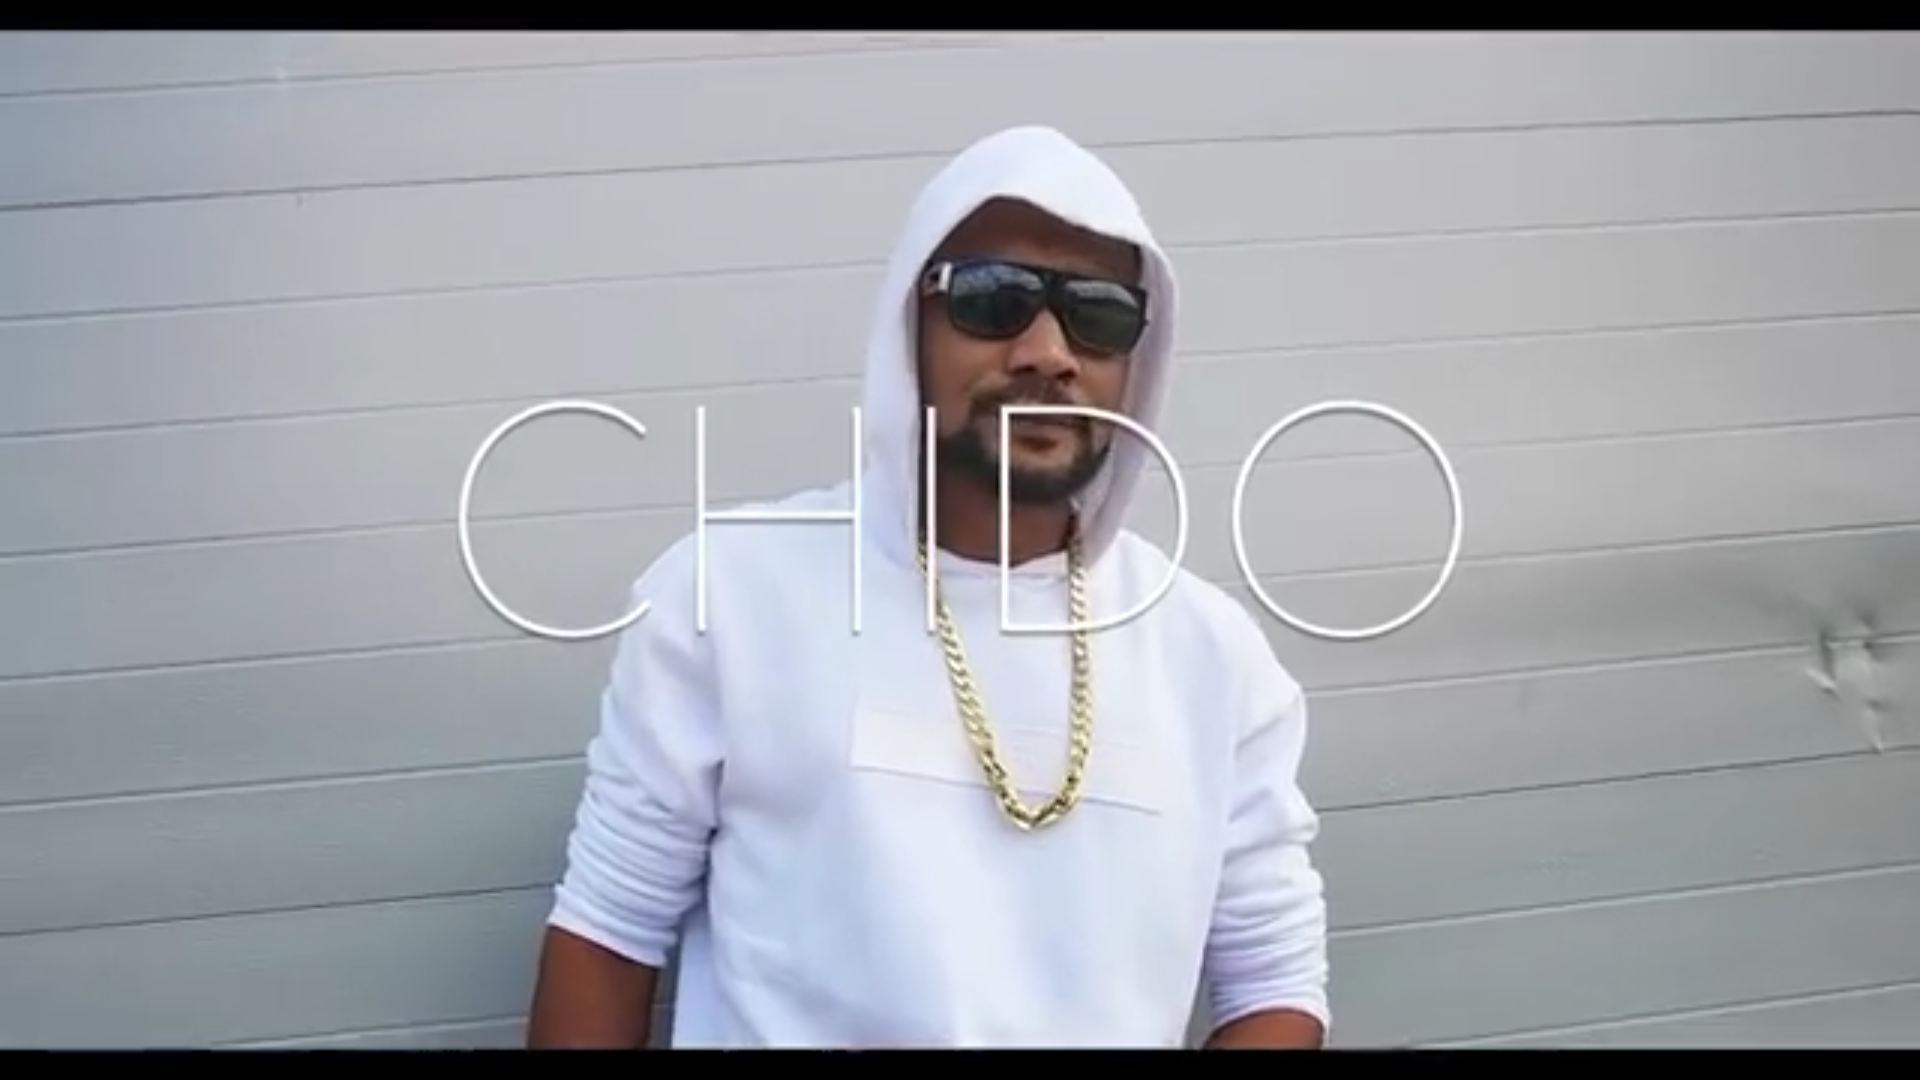 VIDEO: Chido – Skele